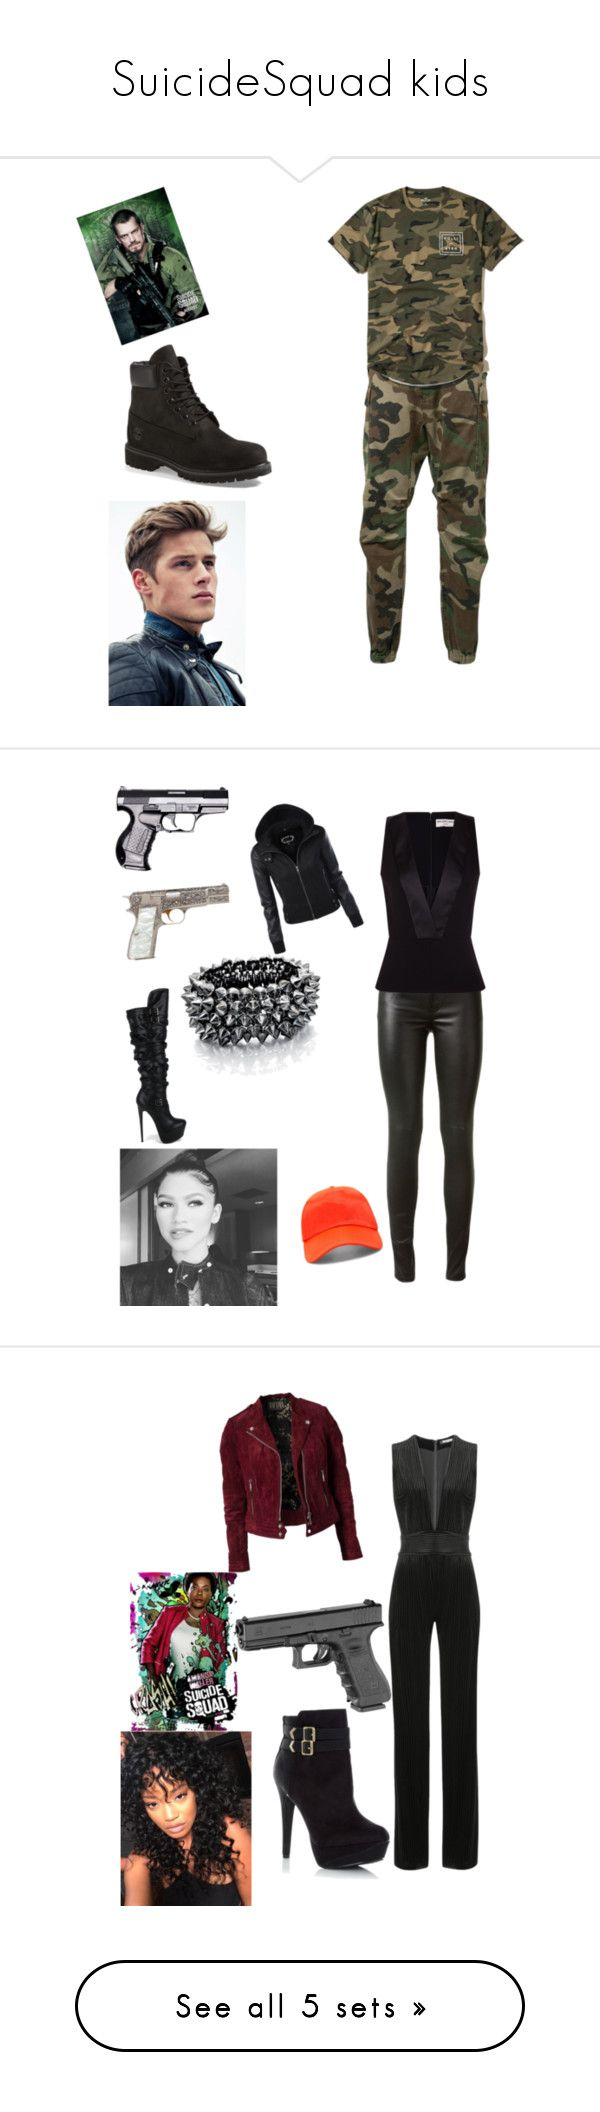 """SuicideSquad kids"" by alexys0612 ❤ liked on Polyvore featuring R13, Hollister Co., Timberland, men's fashion, menswear, Yves Saint Laurent, Balenciaga, Fahrenheit, Fiorelli and Forever 21"